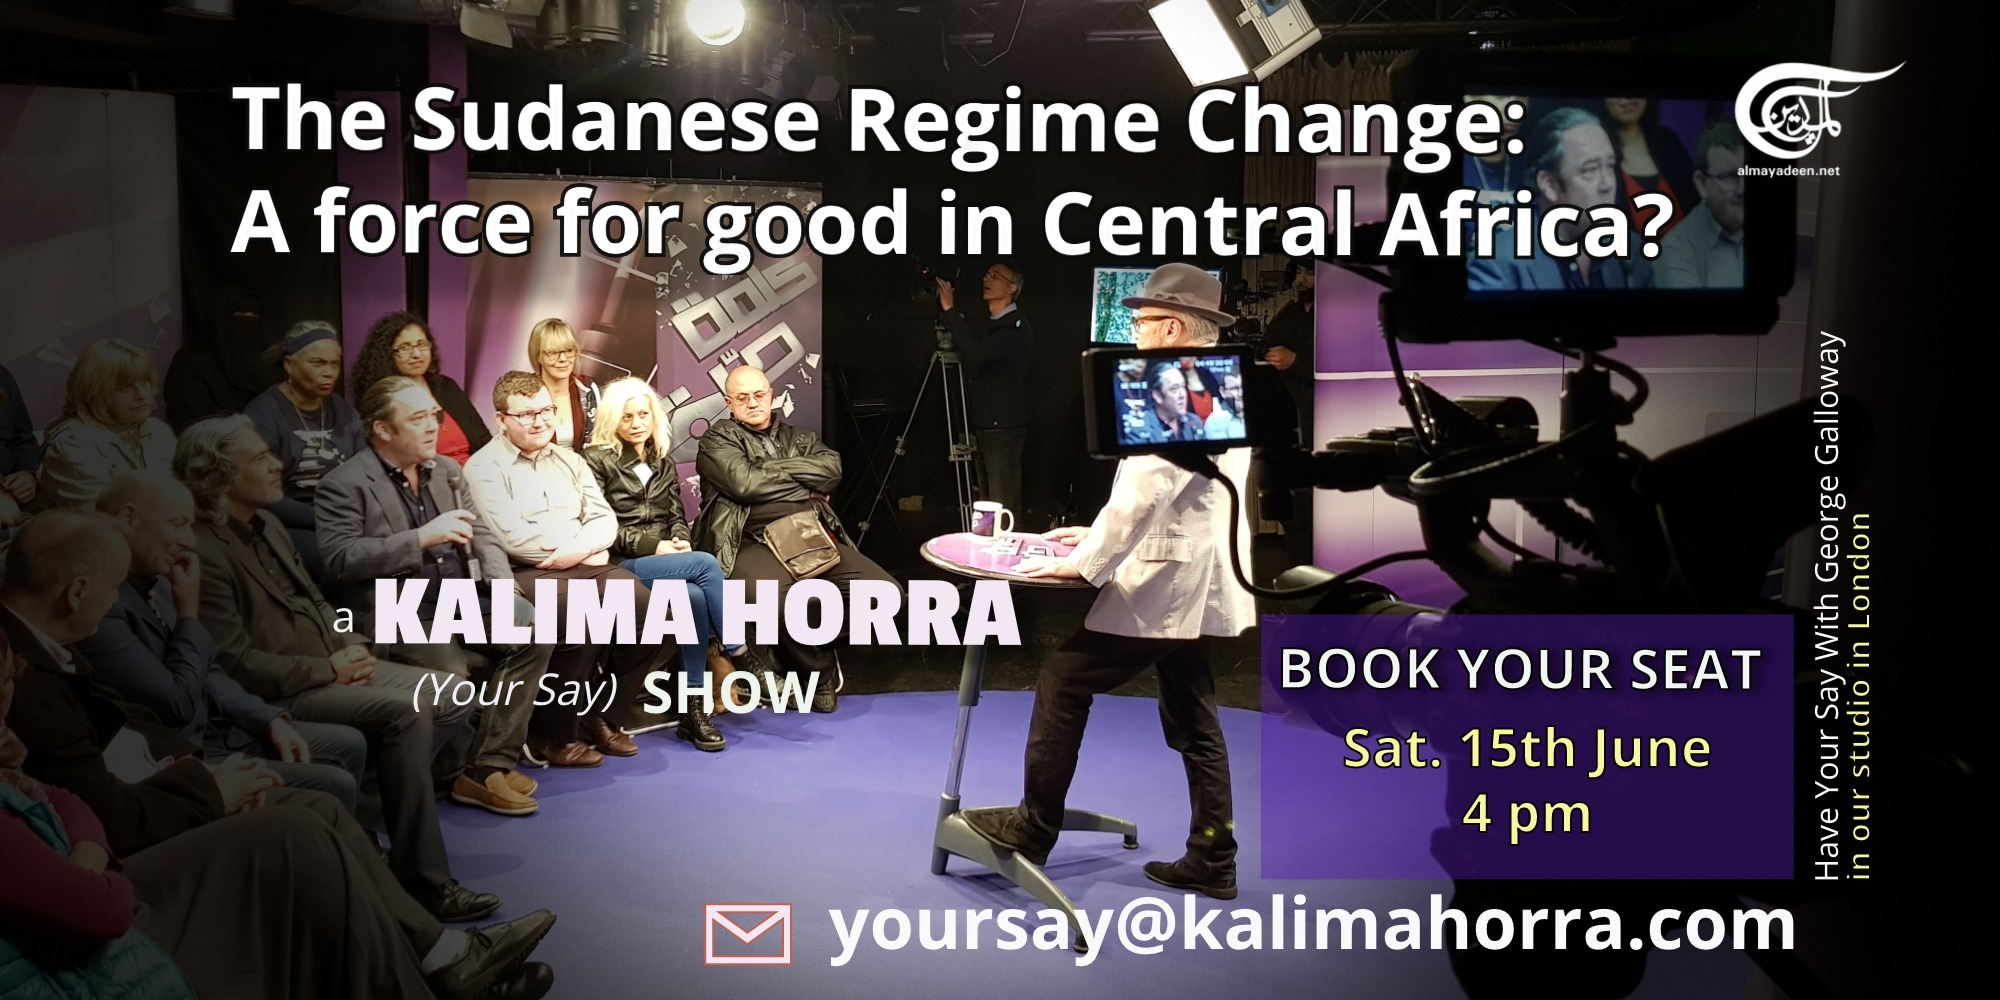 Sudan Flyer 2x1 - Med - Kalima Horra with George Galloway